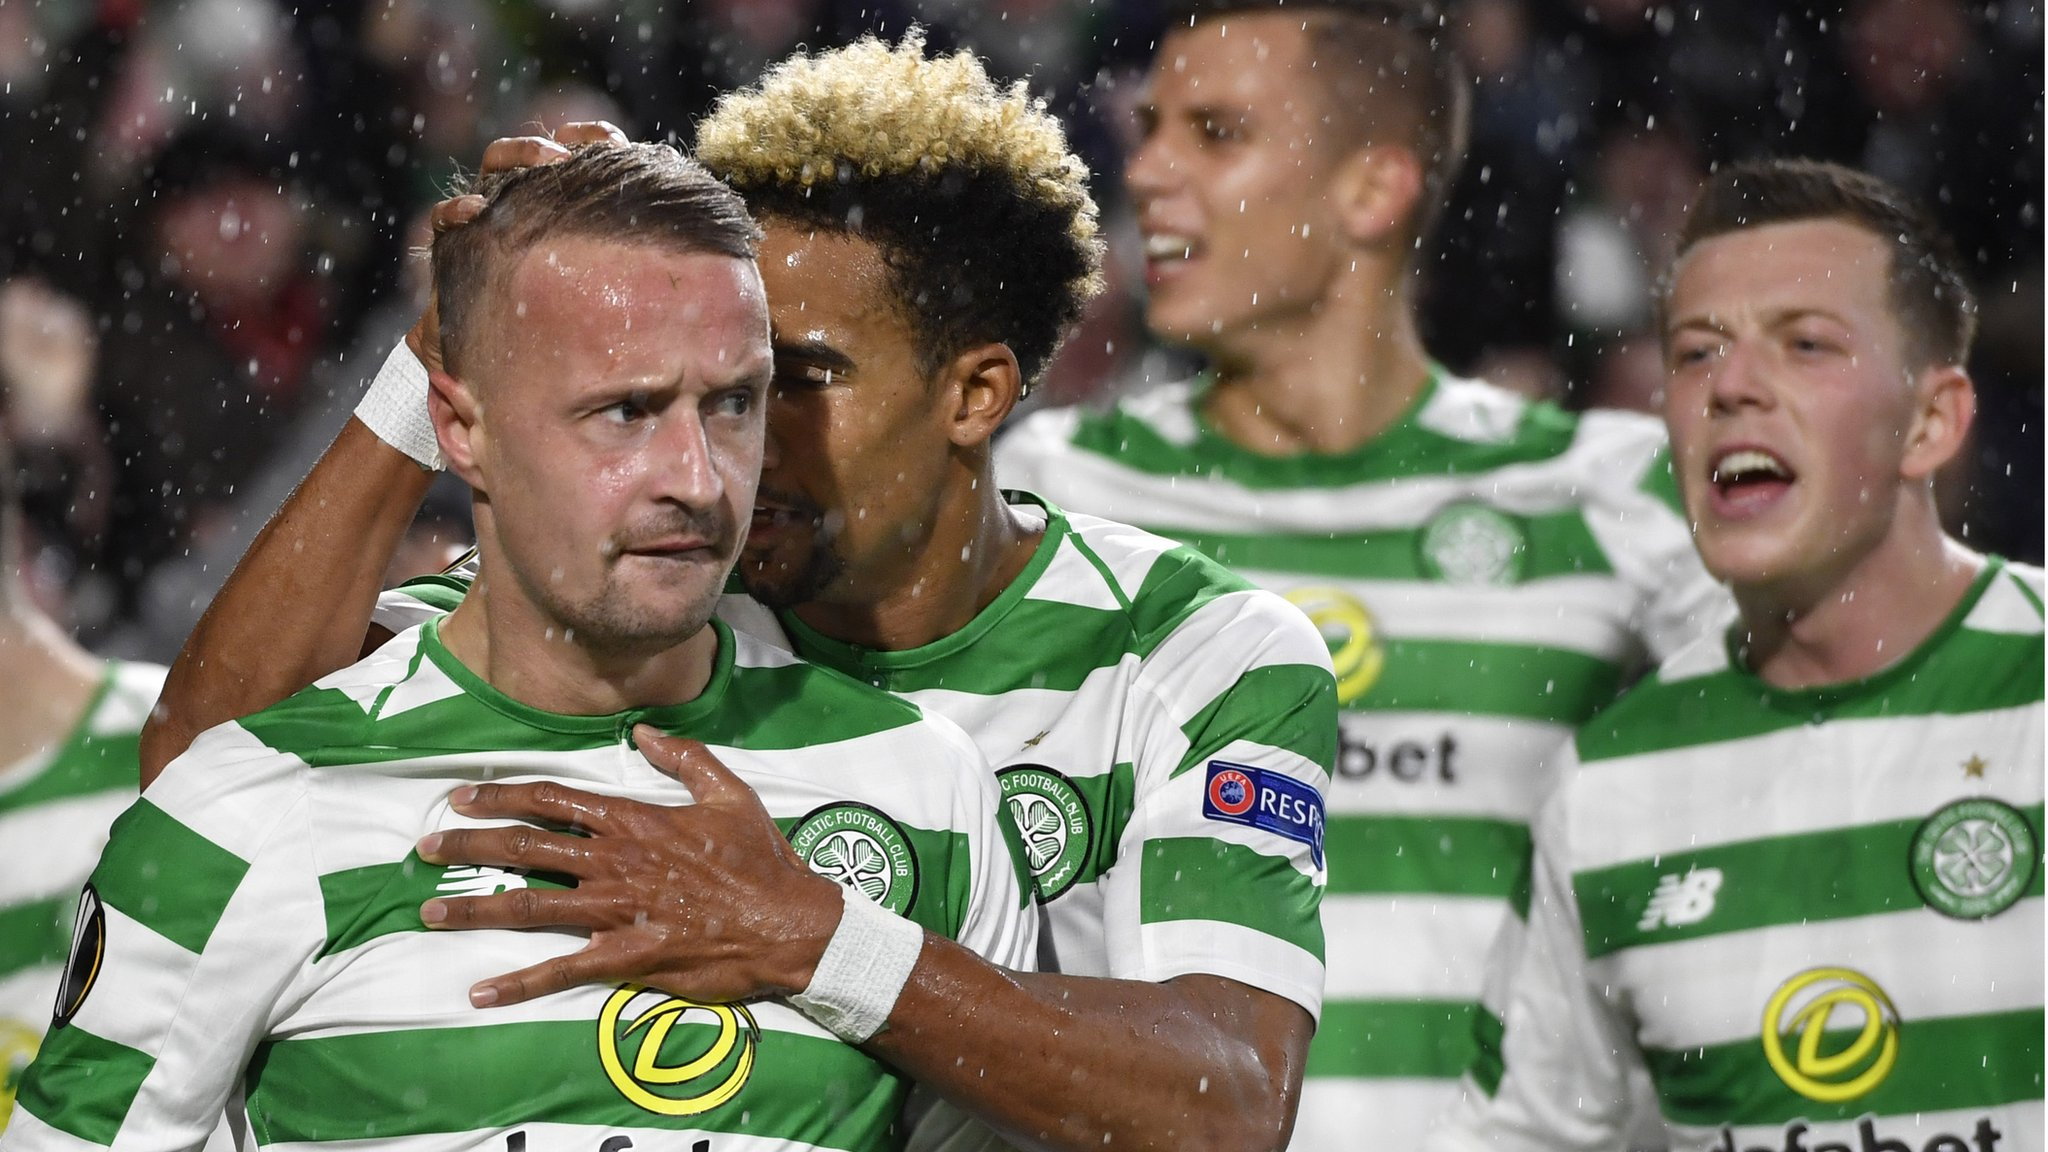 Europa League: Celtic 1-0 Rosenborg - Griffiths header snatches win